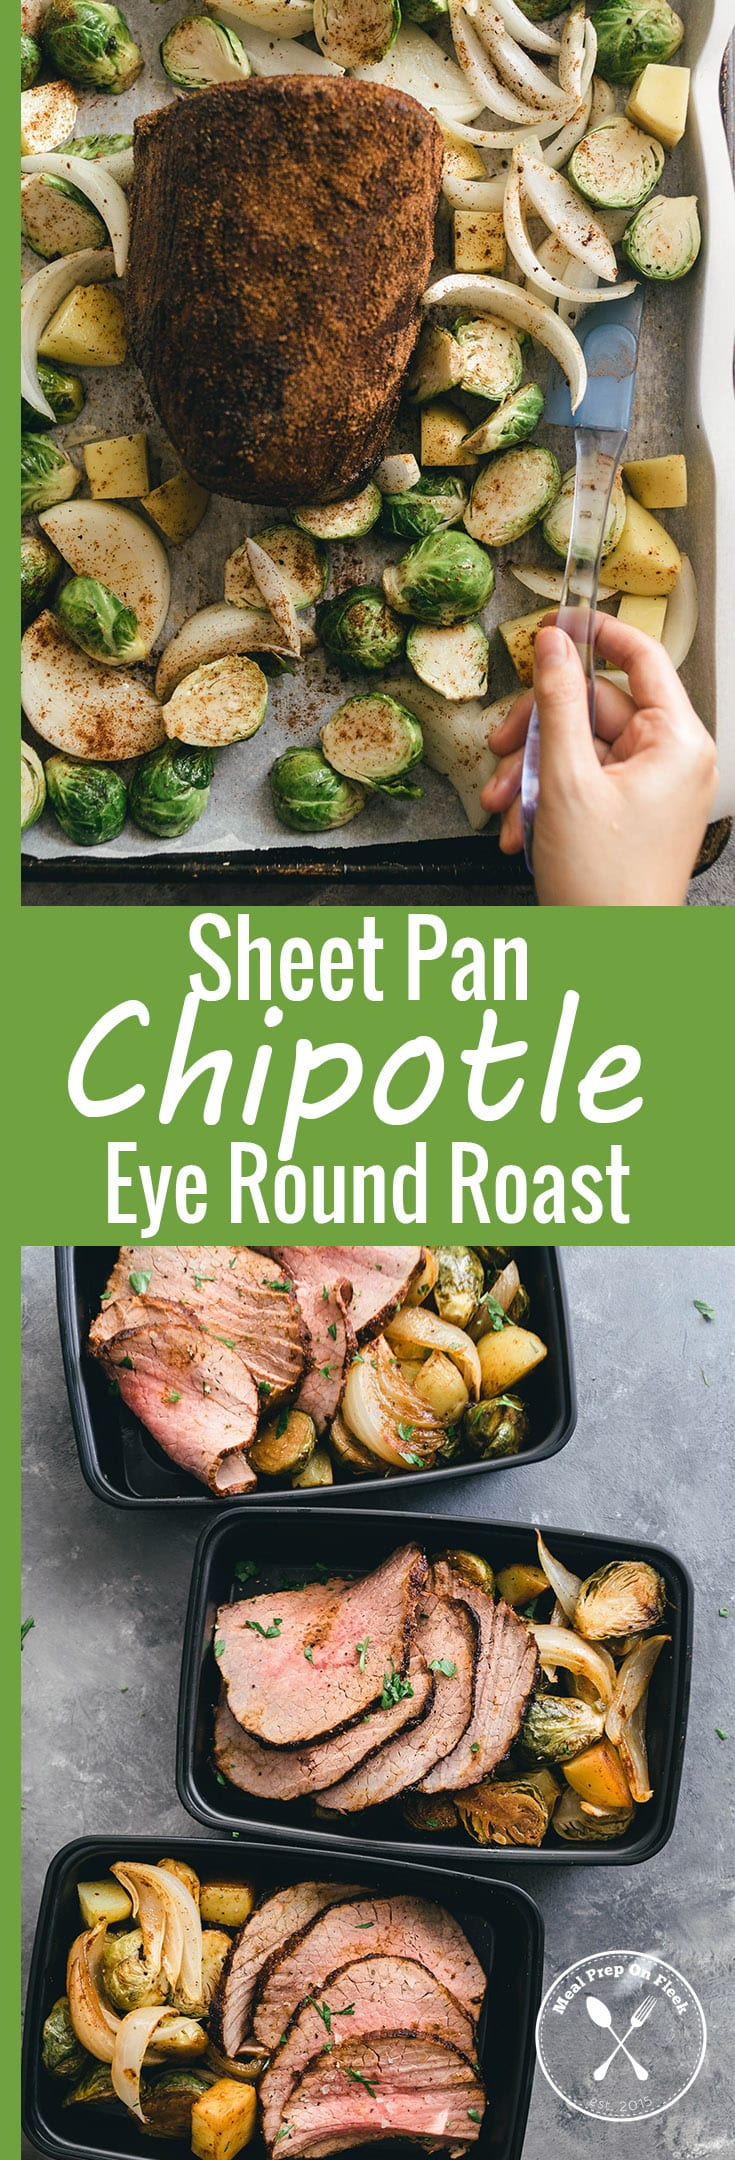 Sheet Pan Chipotle Eye Round Roast Meal Prep Recipe